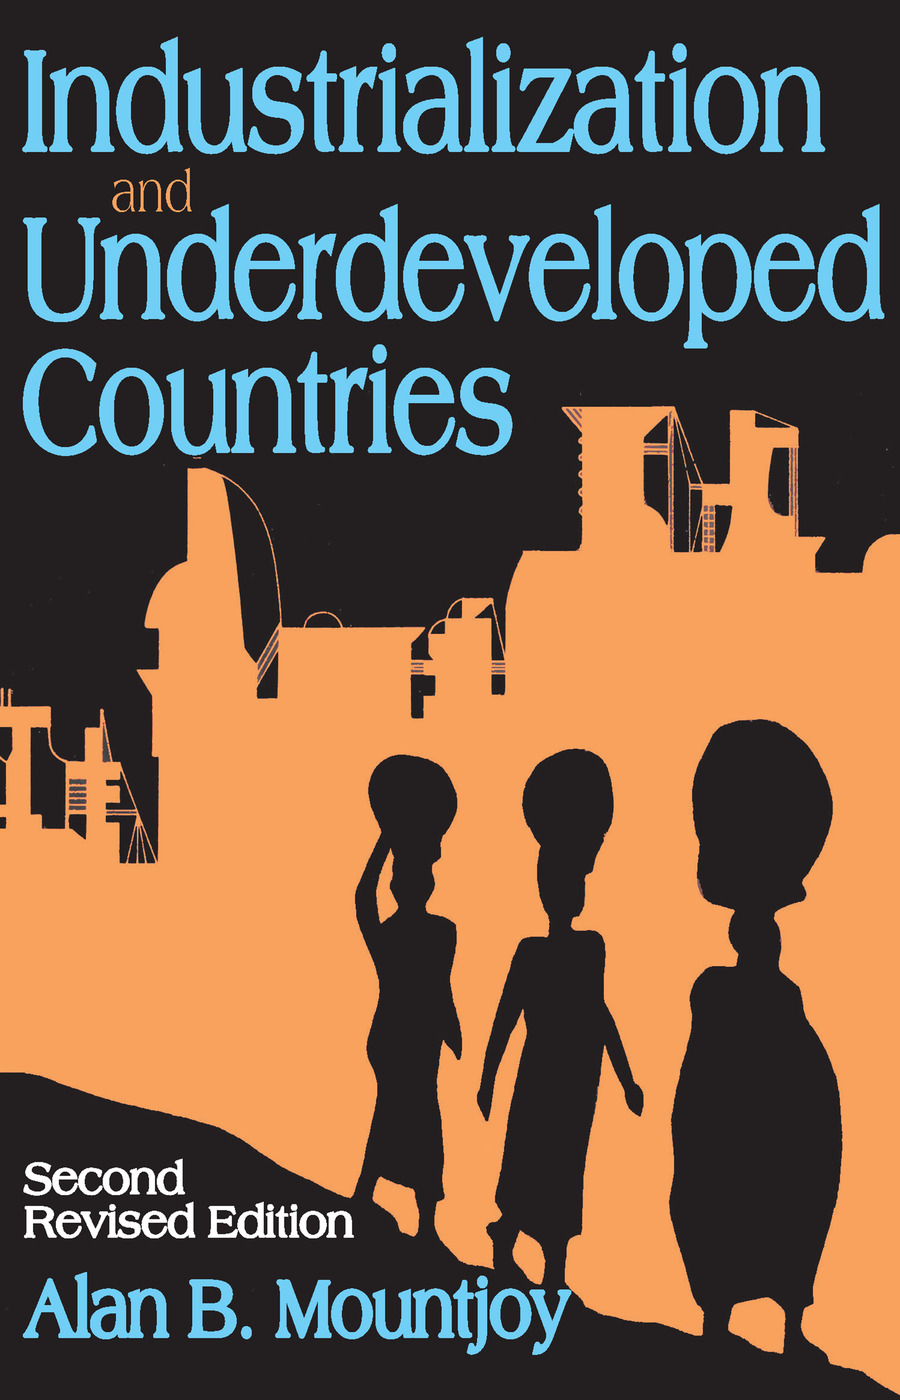 Industrialization and Underdeveloped Countries